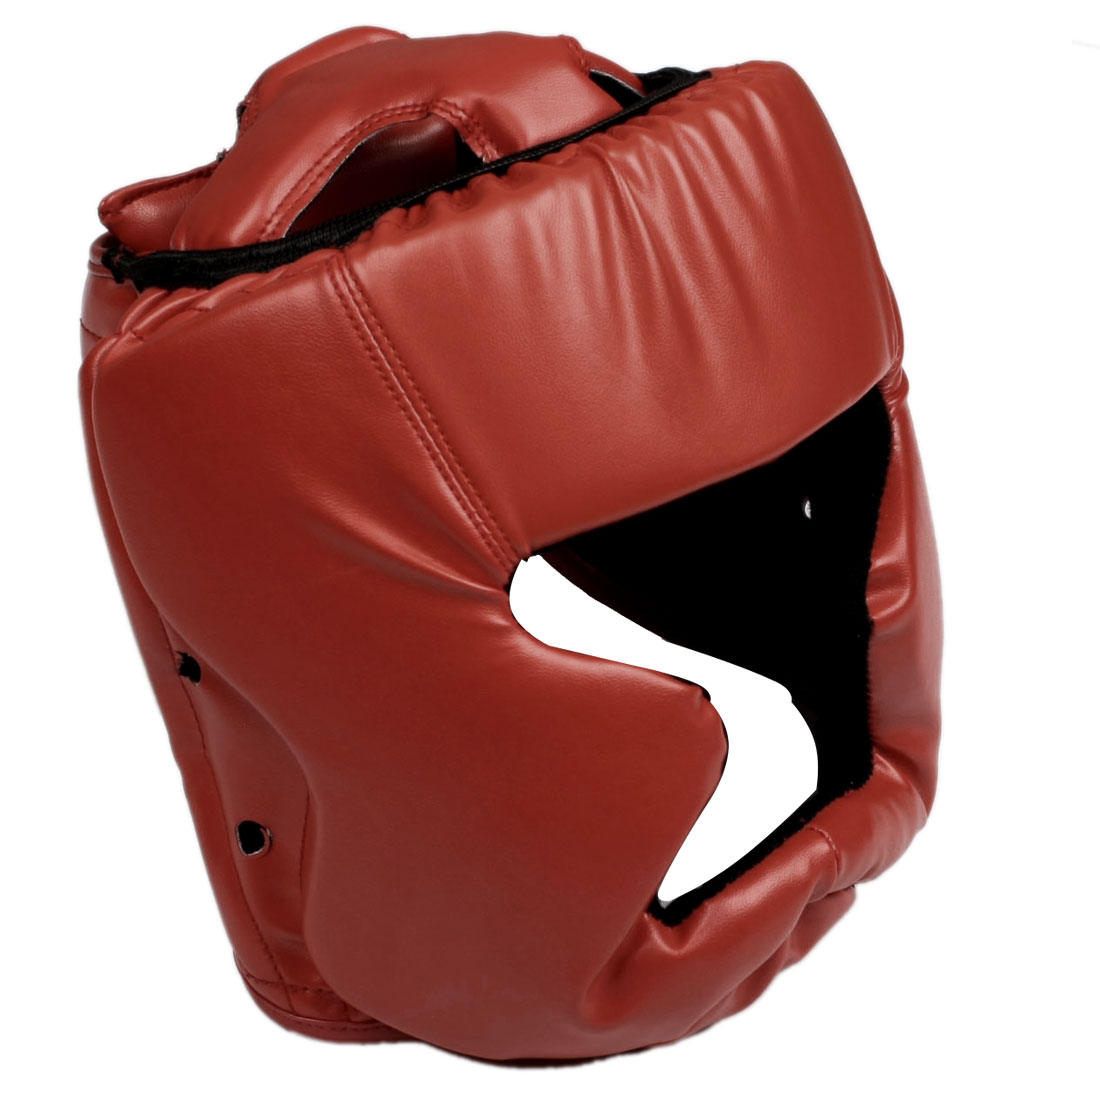 Unique Bargains Unique Bargains Adult Full Coverage Faux Leather Boxing Headgear Helmet Size XL